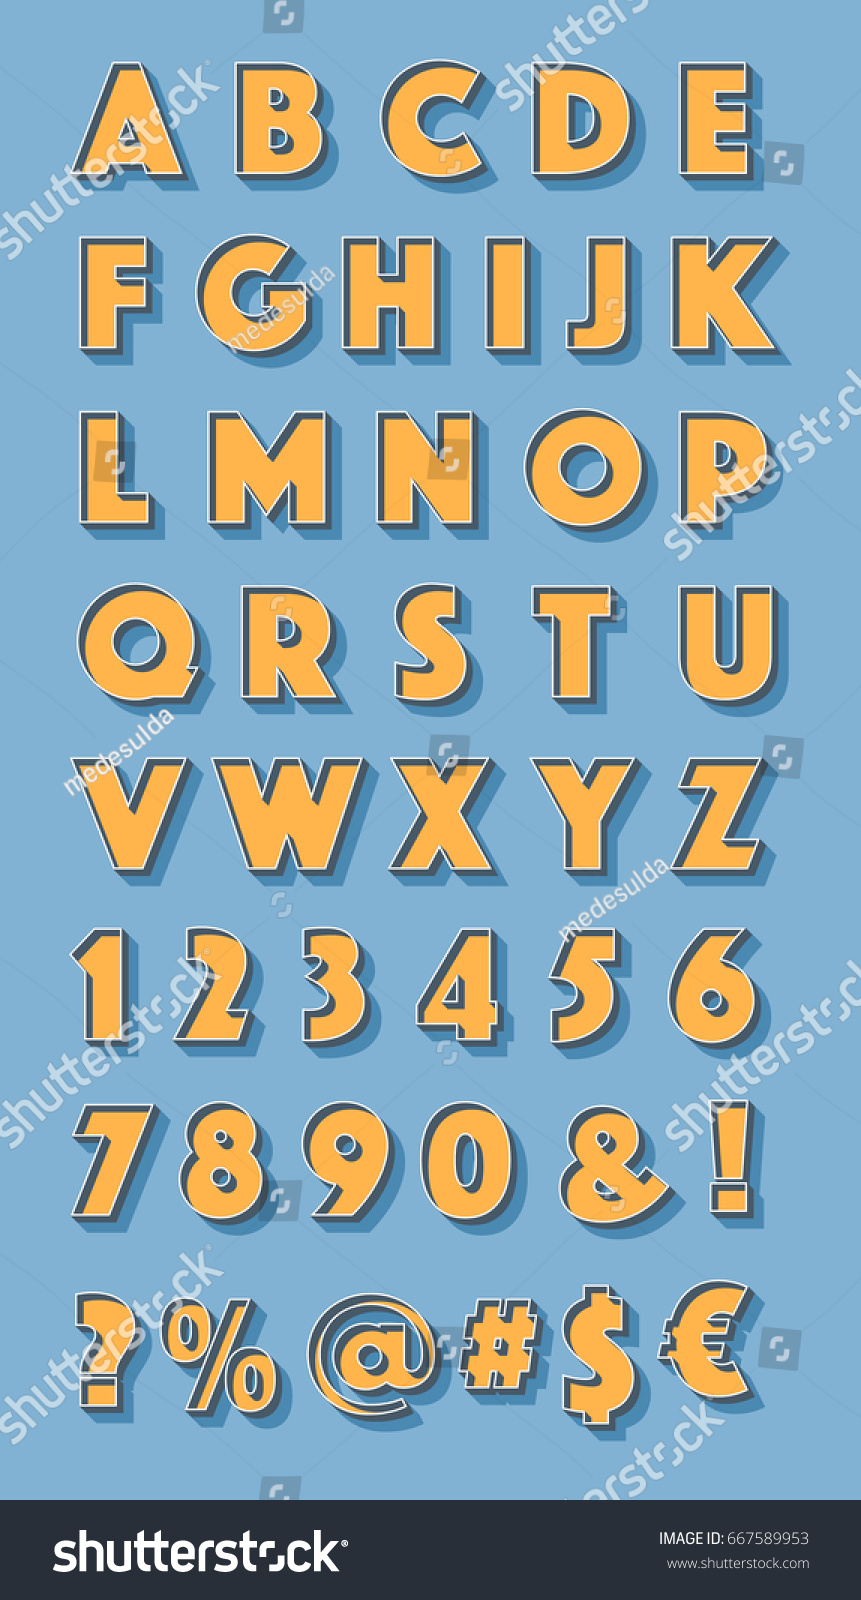 Retro Styled Alphabet Numbers Orthographic Symbols Stock Vector ...